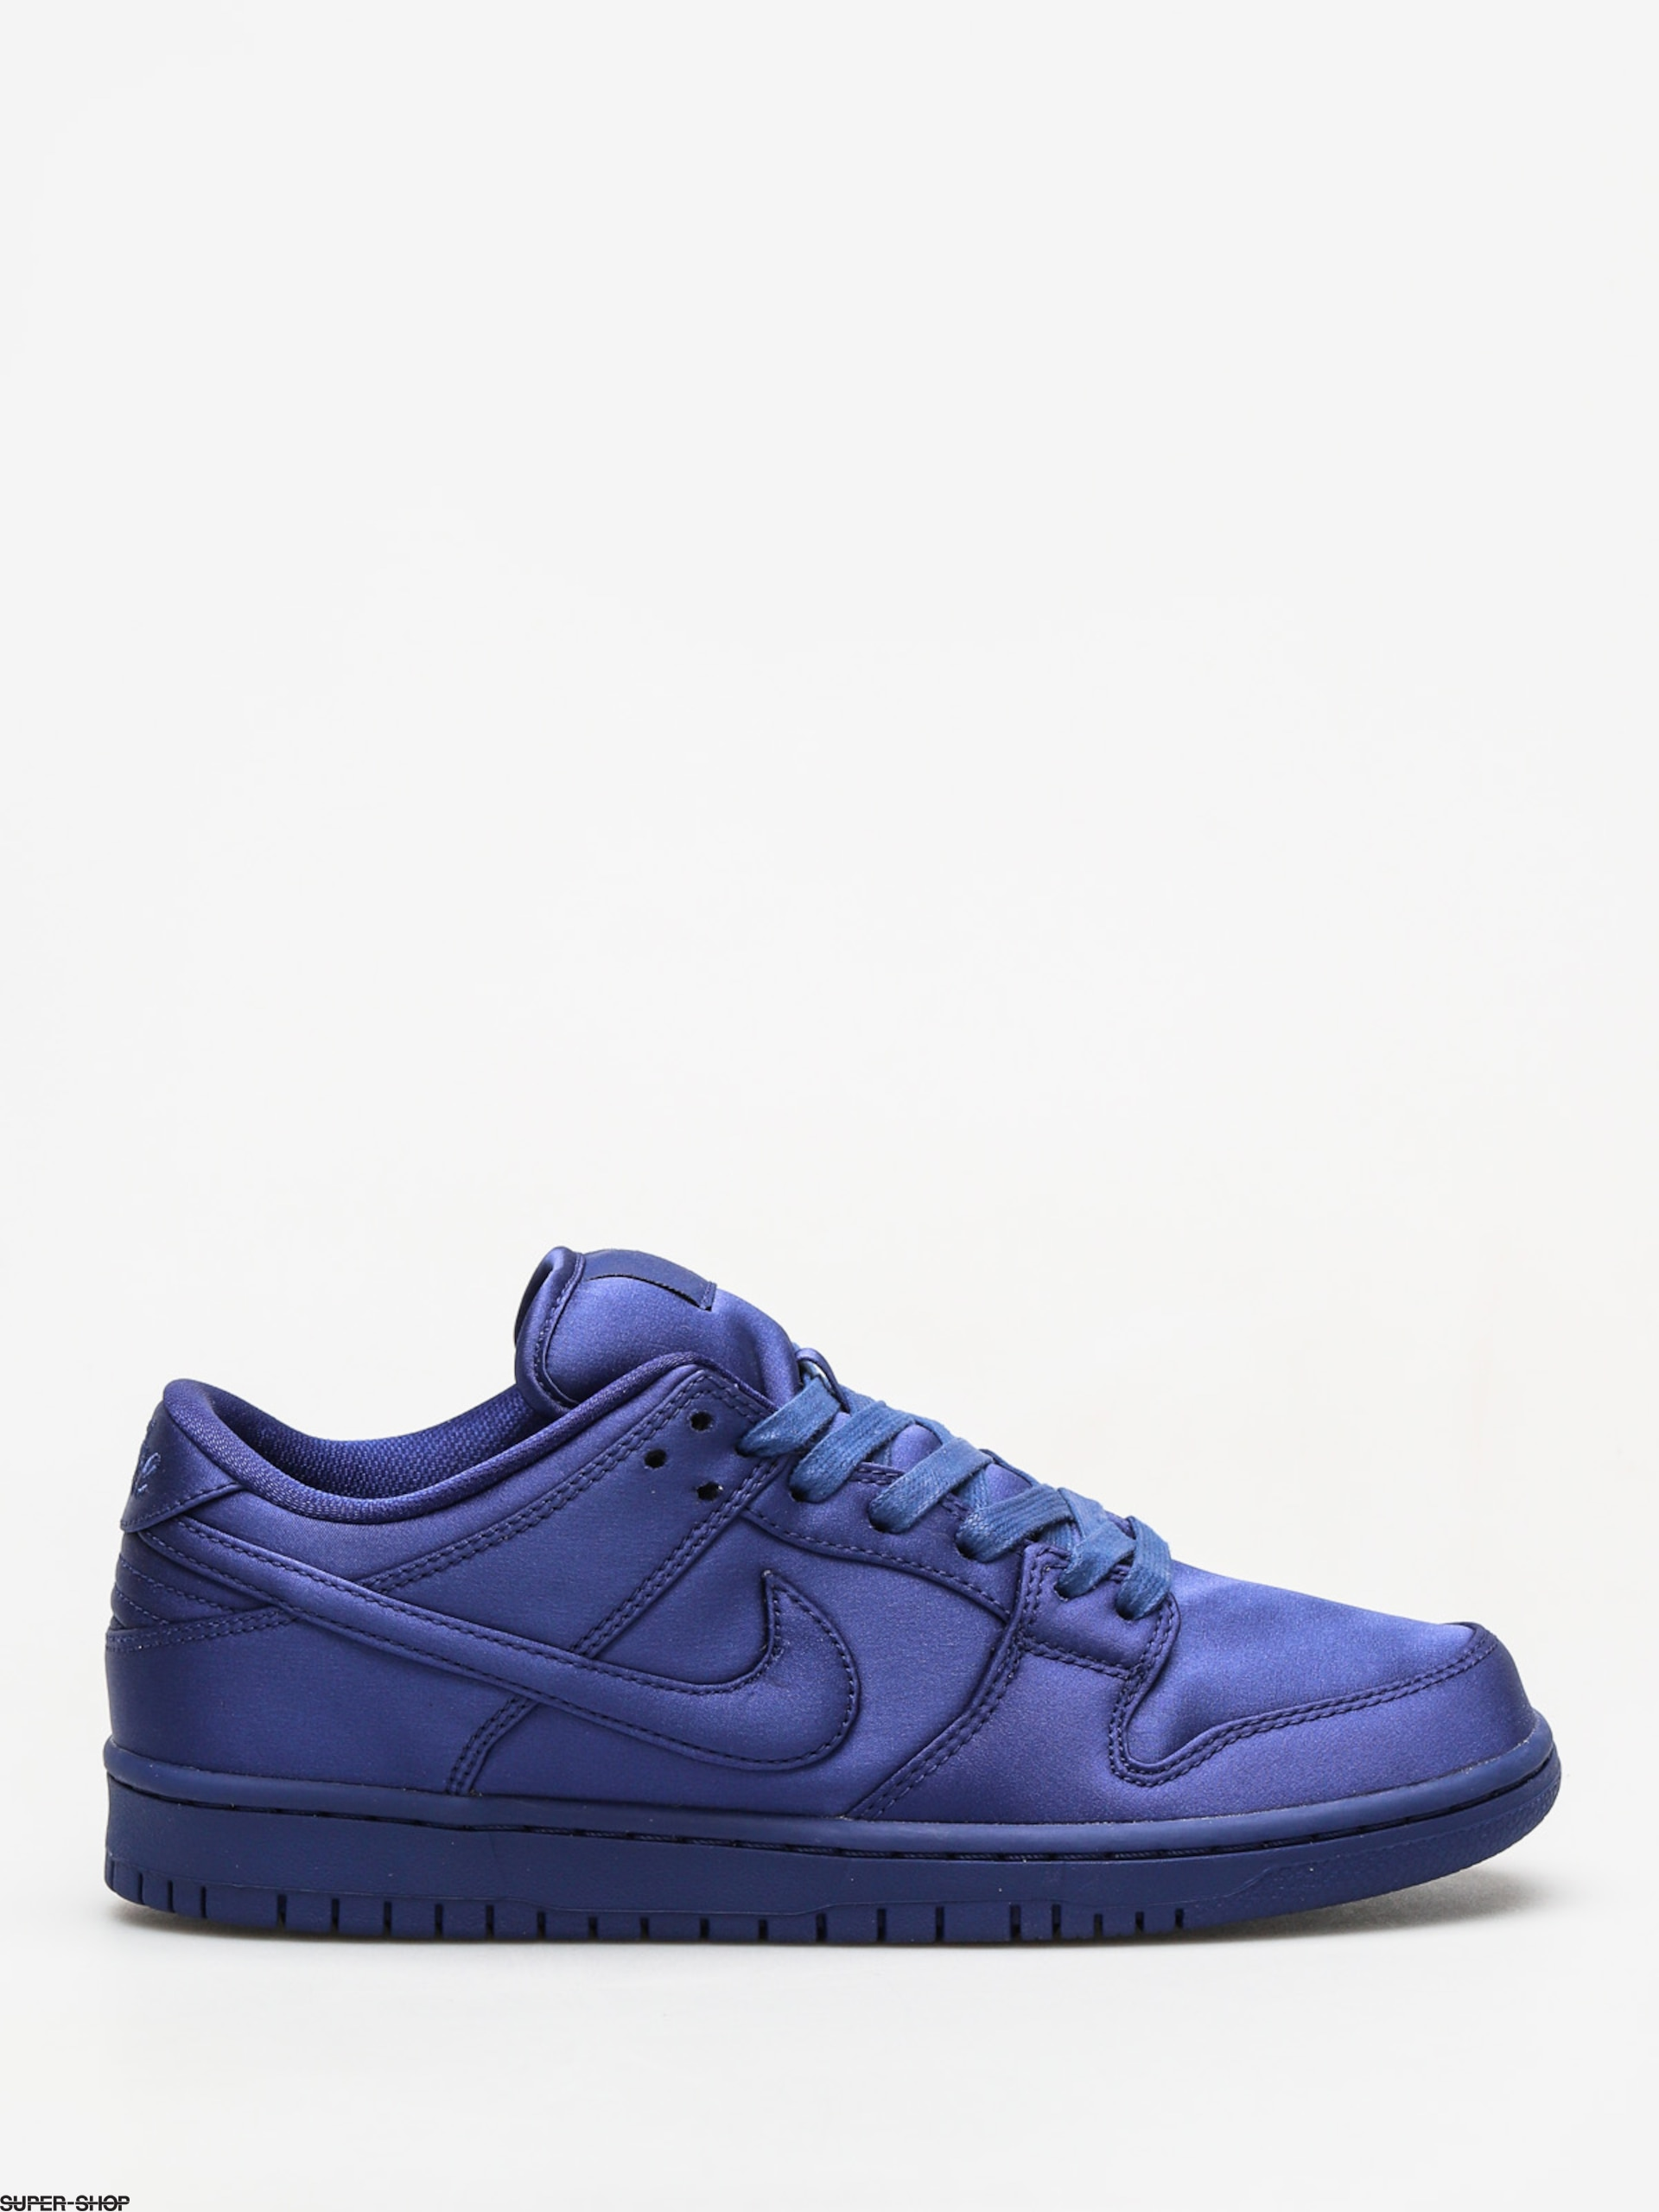 separation shoes 63b8b dc532 Nike SB Sb Dunk Low TRD NBA Shoes (deep royal blue/deep royal blue)